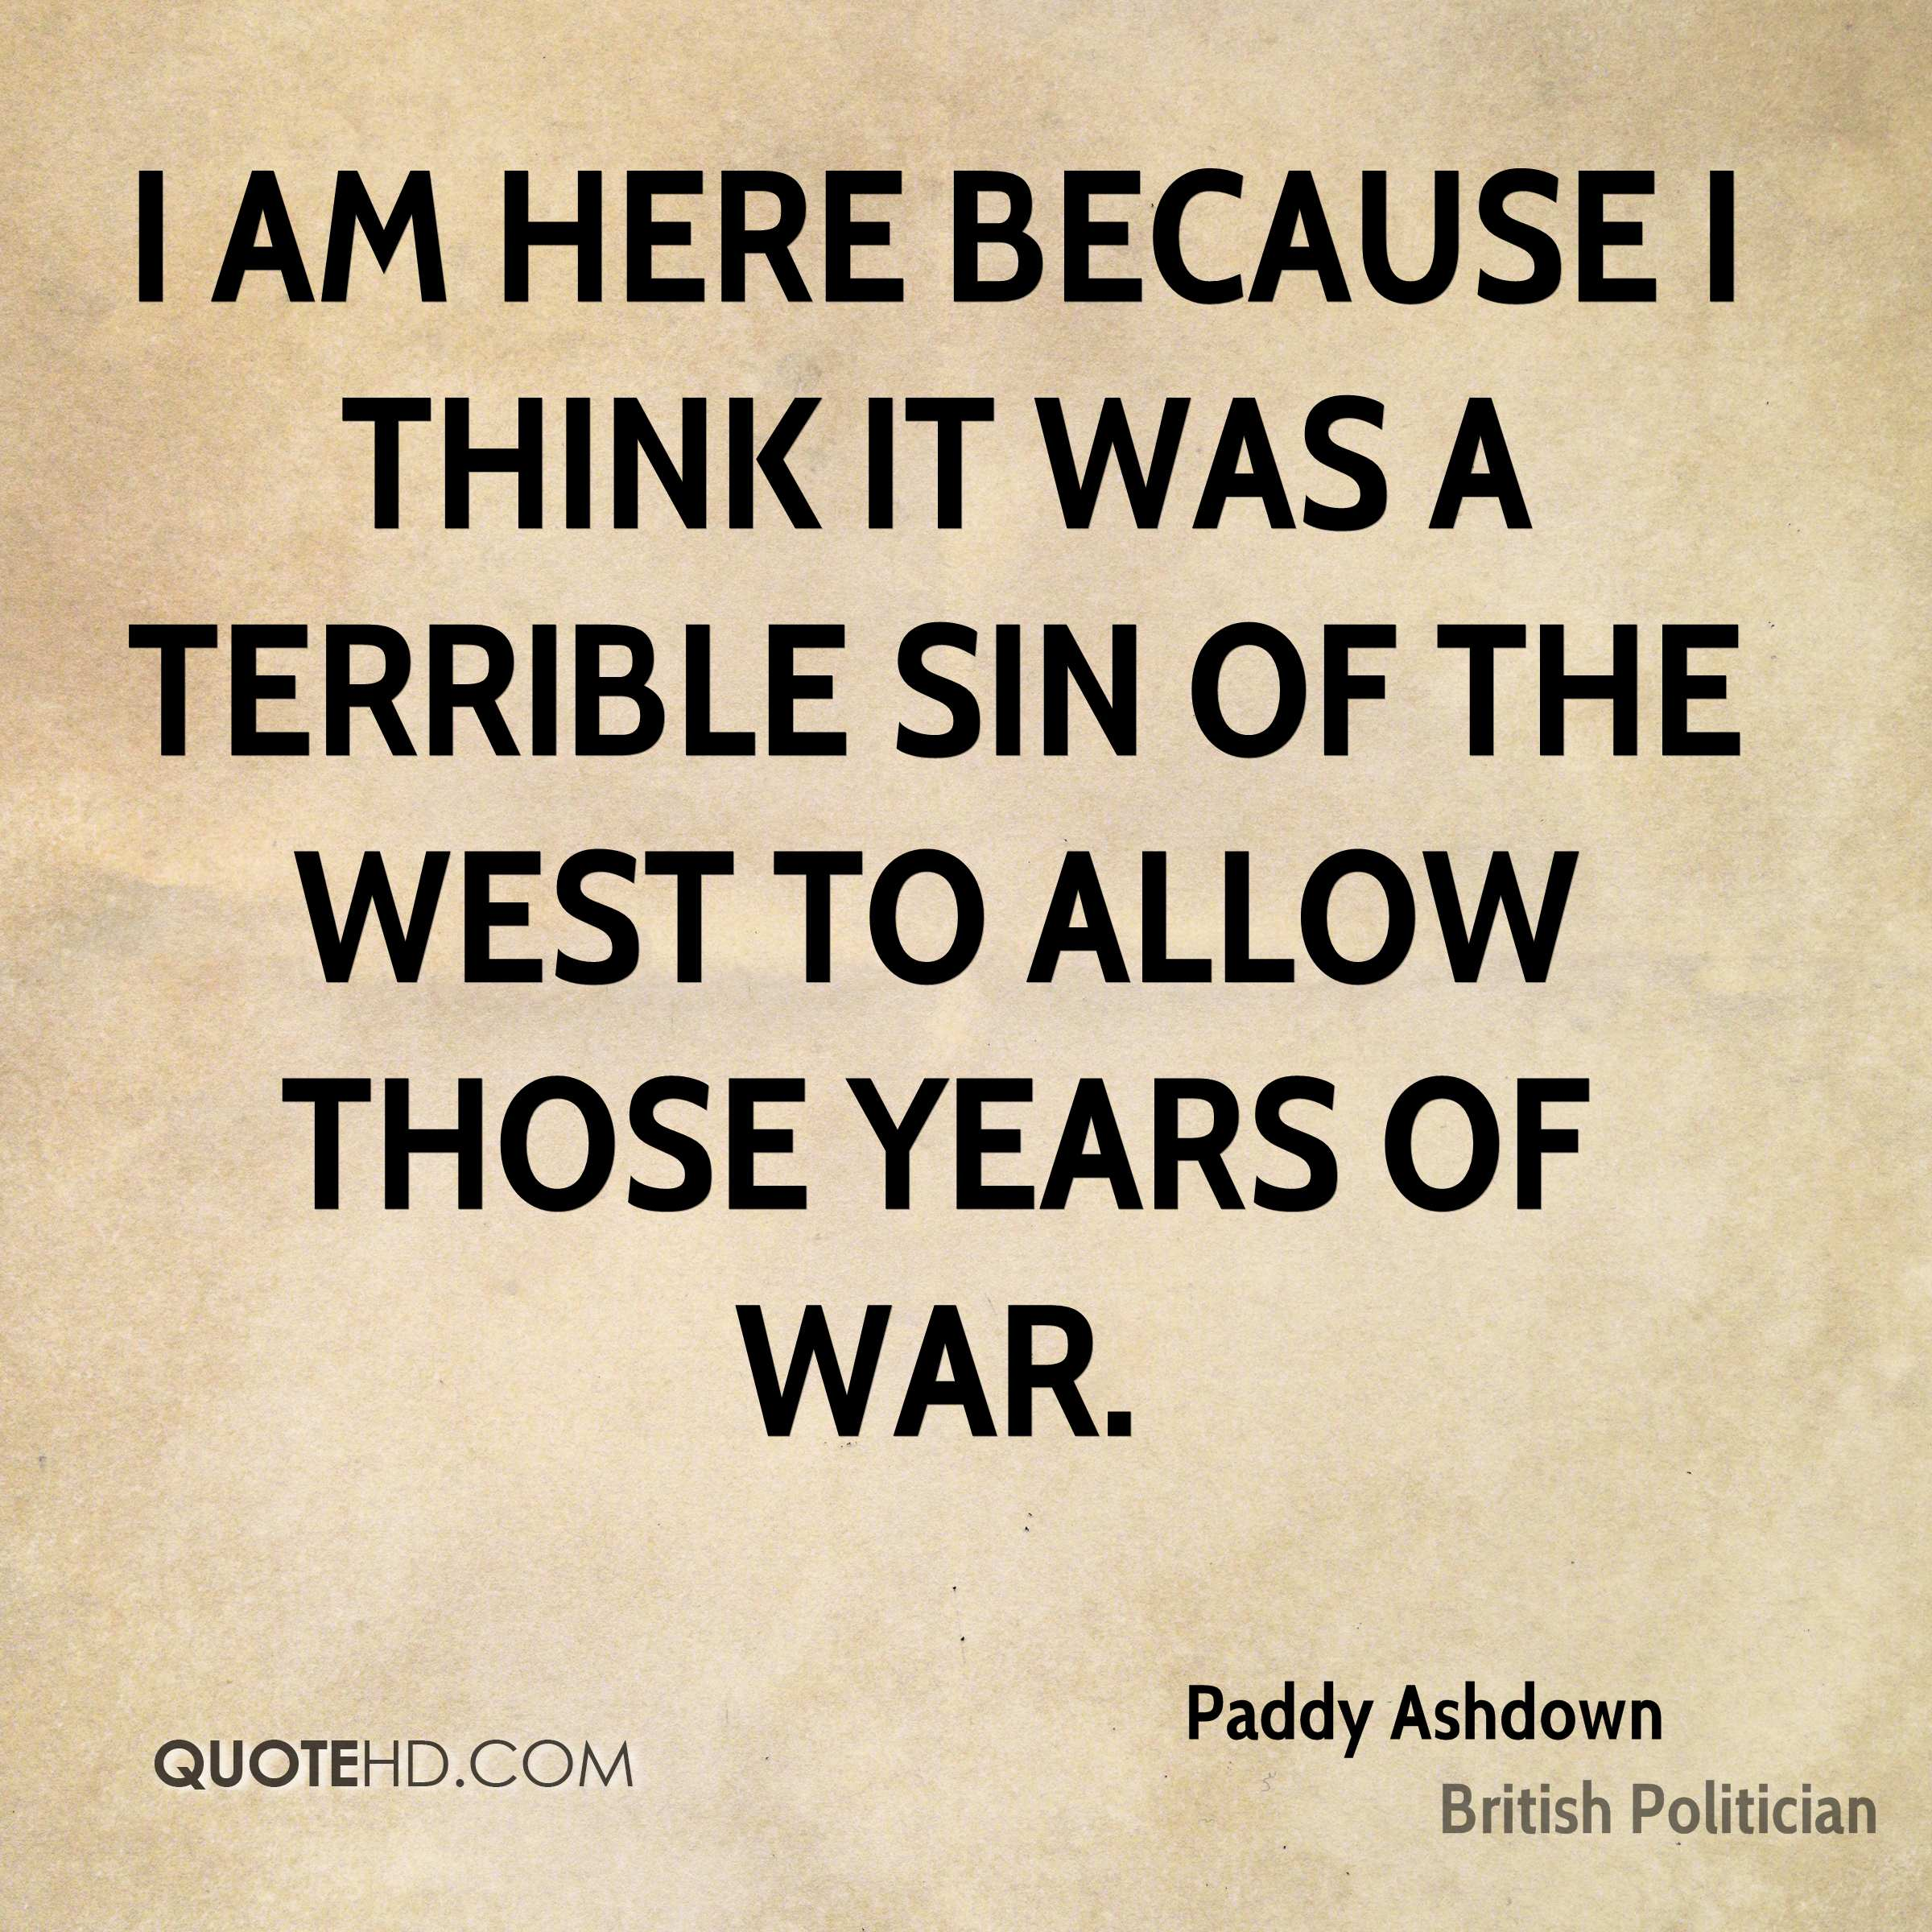 I am here because I think it was a terrible sin of the west to allow those years of war.